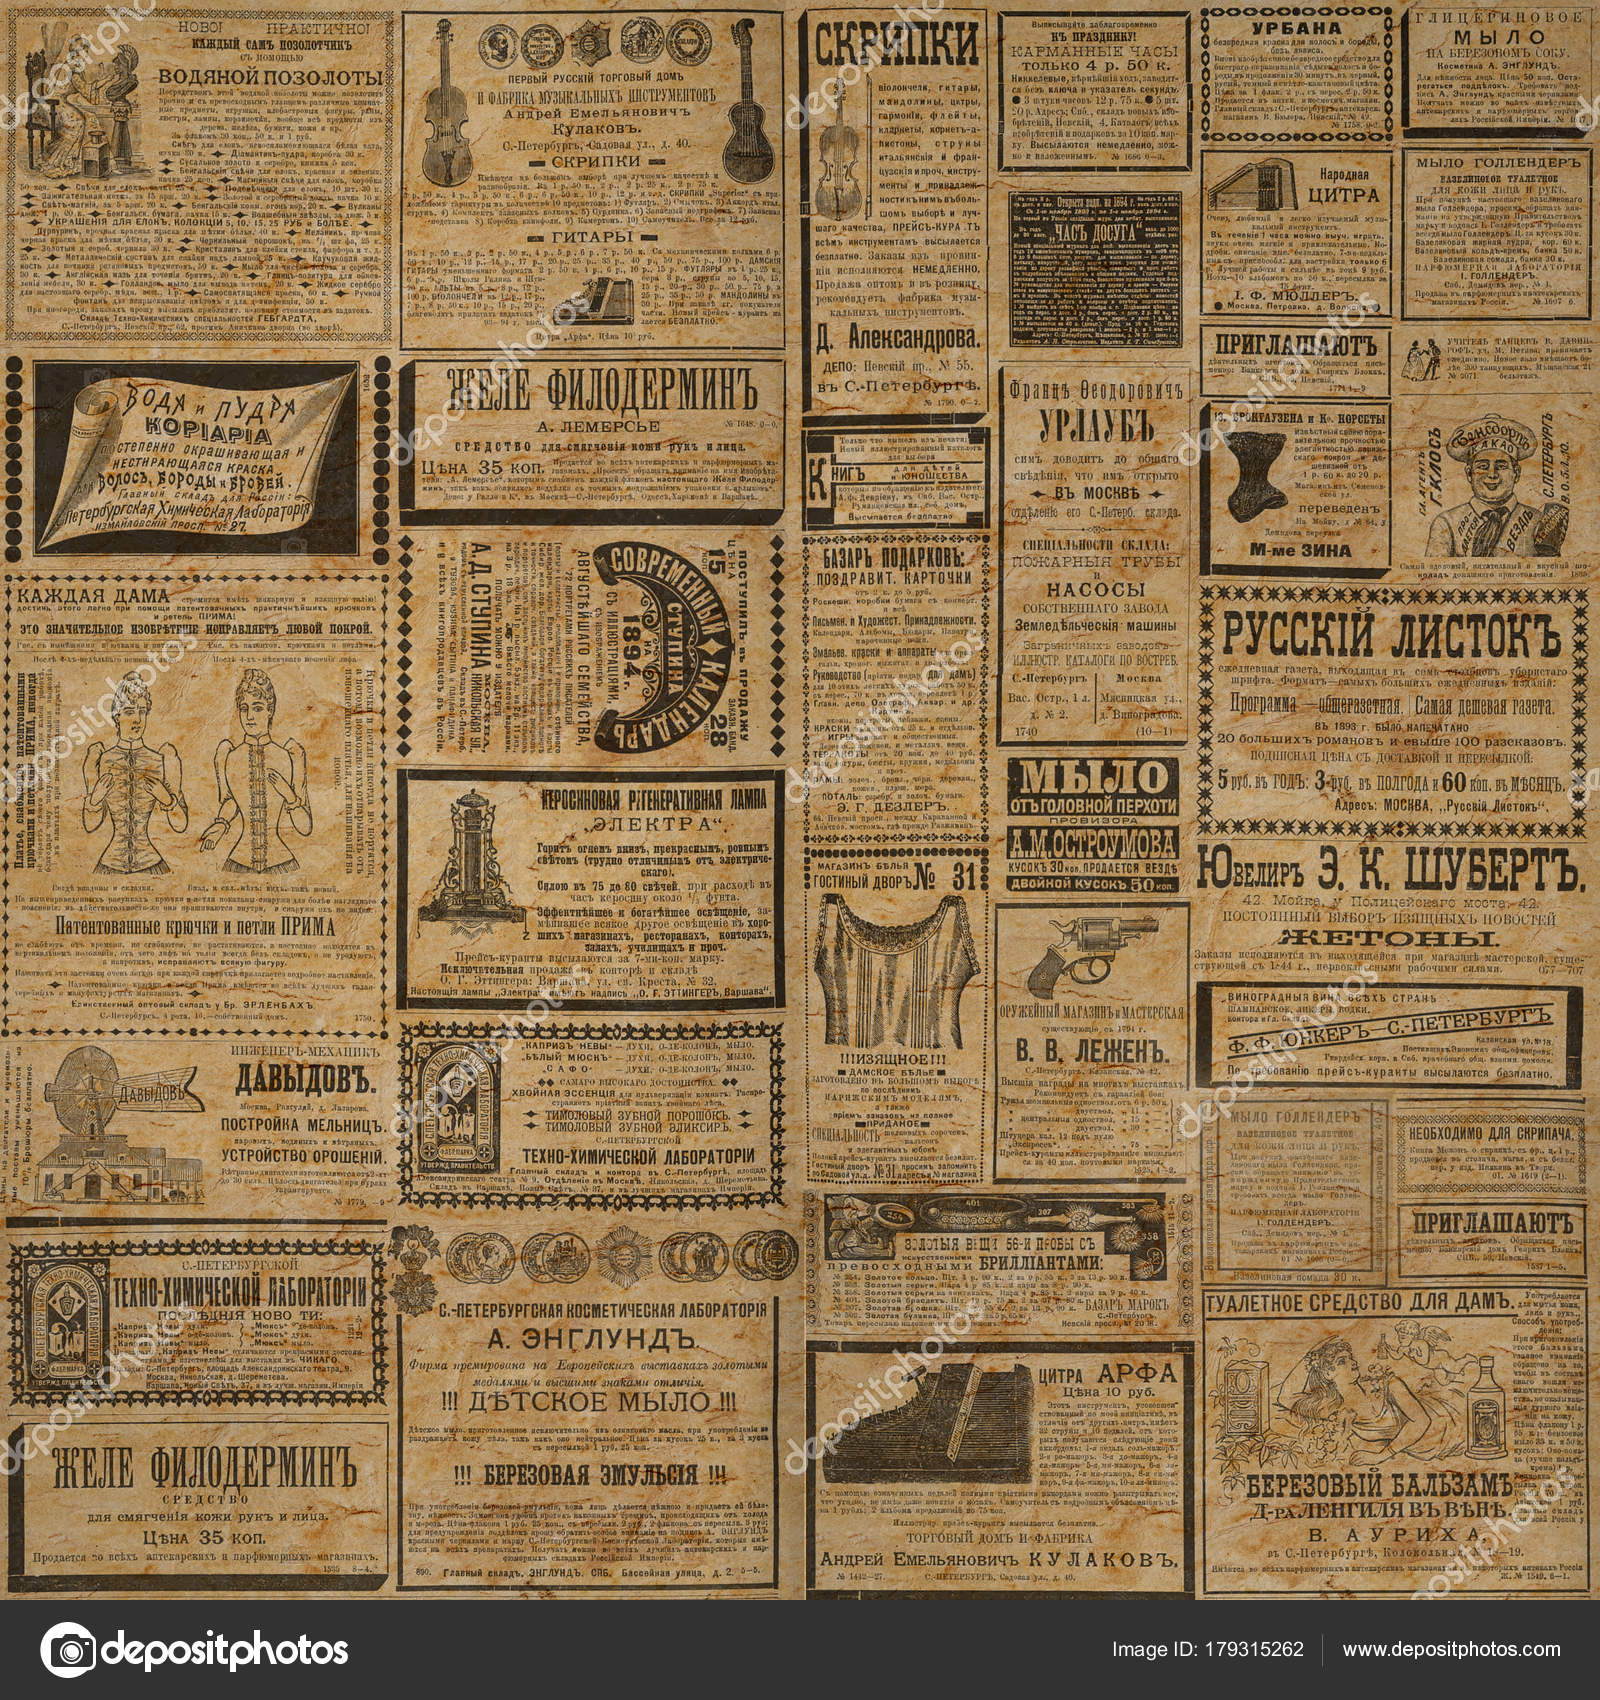 Vintage Newspaper Texture A Page Illustration With Advertisements From Old Russian Of 1893 Gray Beige Collage